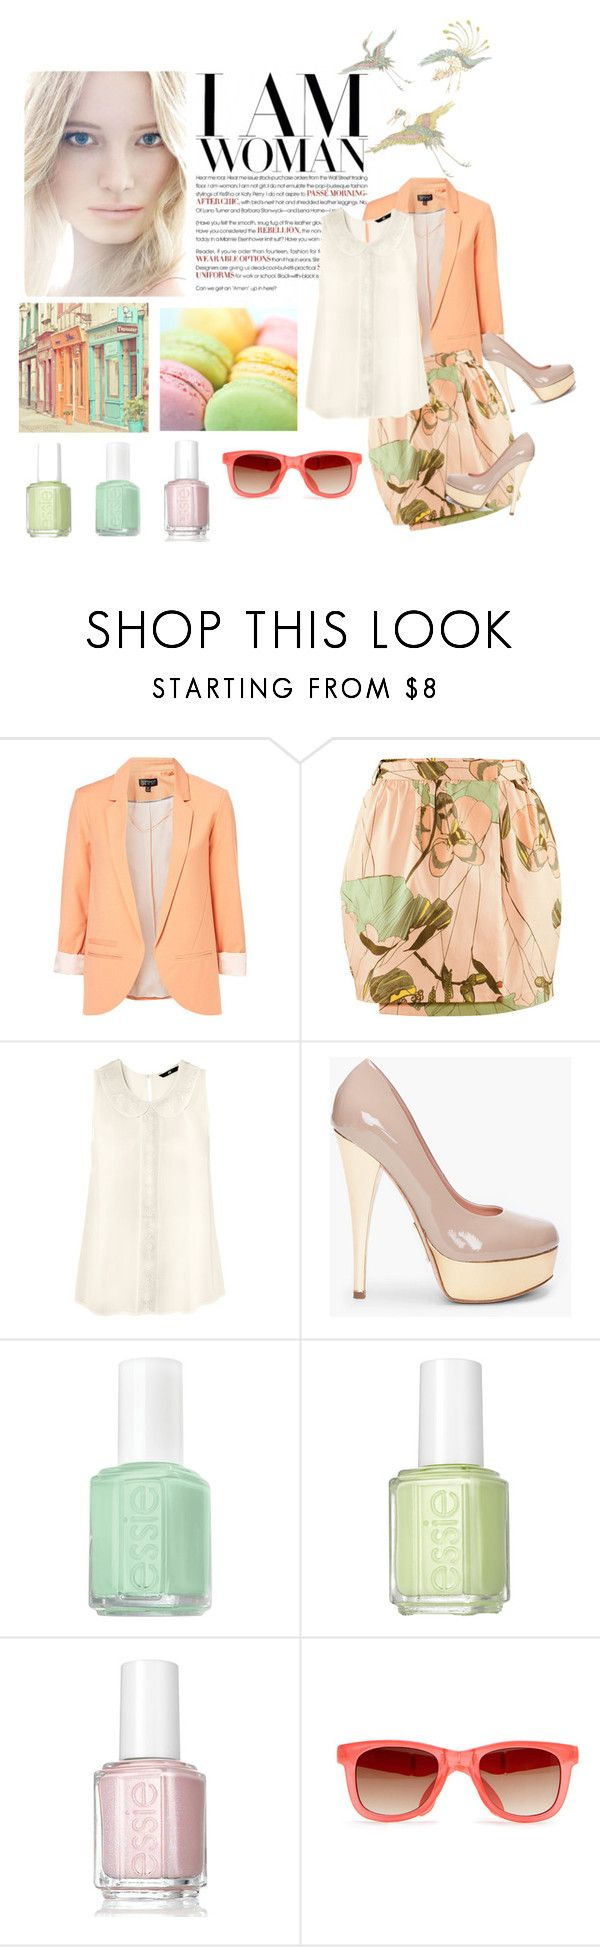 """Pastels (ABC About Me Quiz)"" by fashionmist47 ❤ liked on Polyvore featuring H&M, Alejandro Ingelmo, Essie, MANGO and Felix"